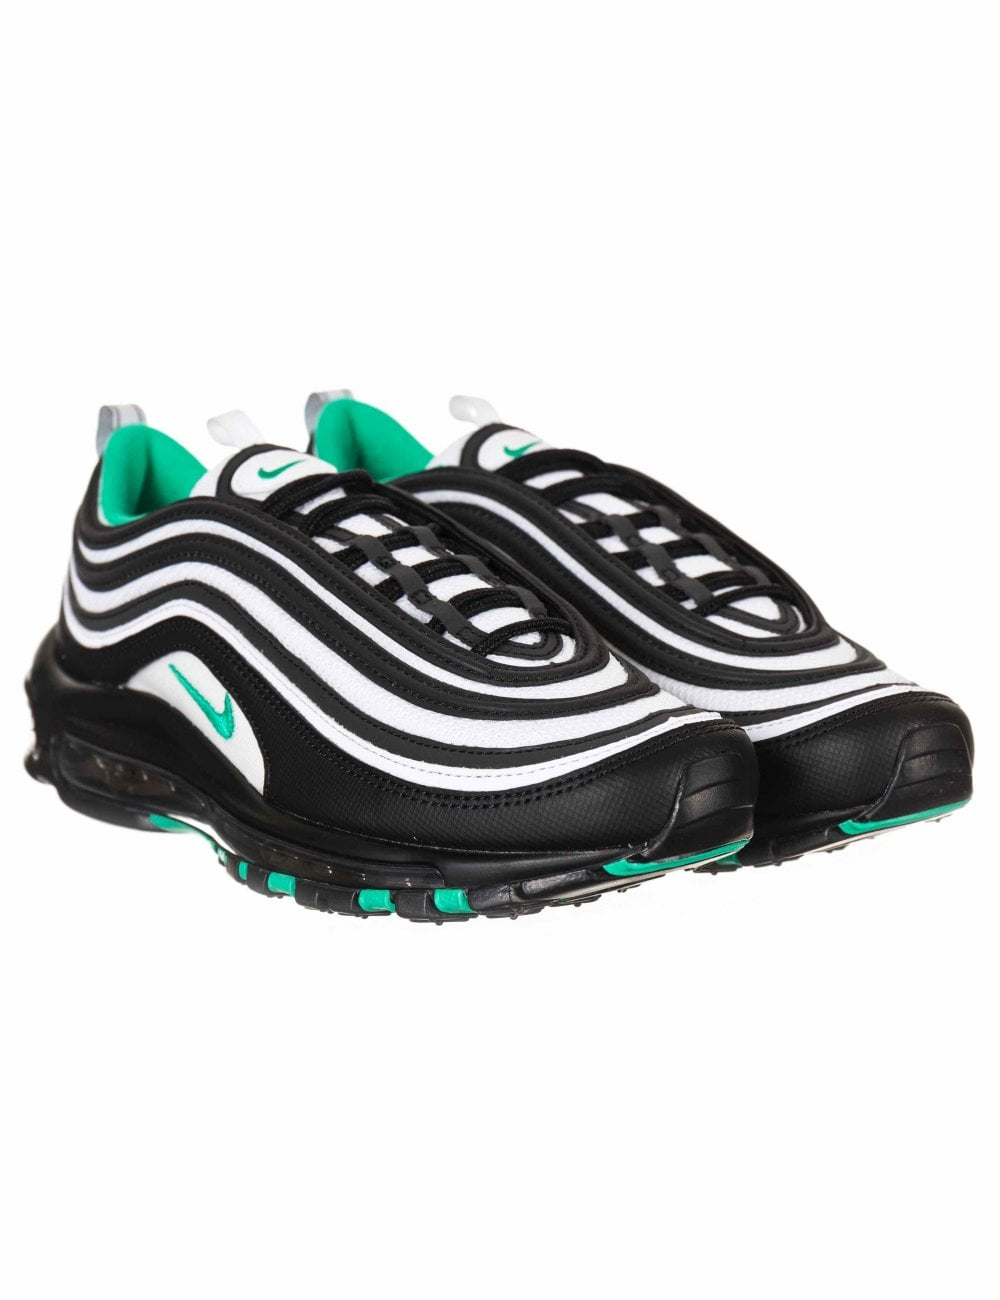 9e279a013c Nike Air Max 97 Trainers - Black/Clear Emerald - Footwear from Fat ...